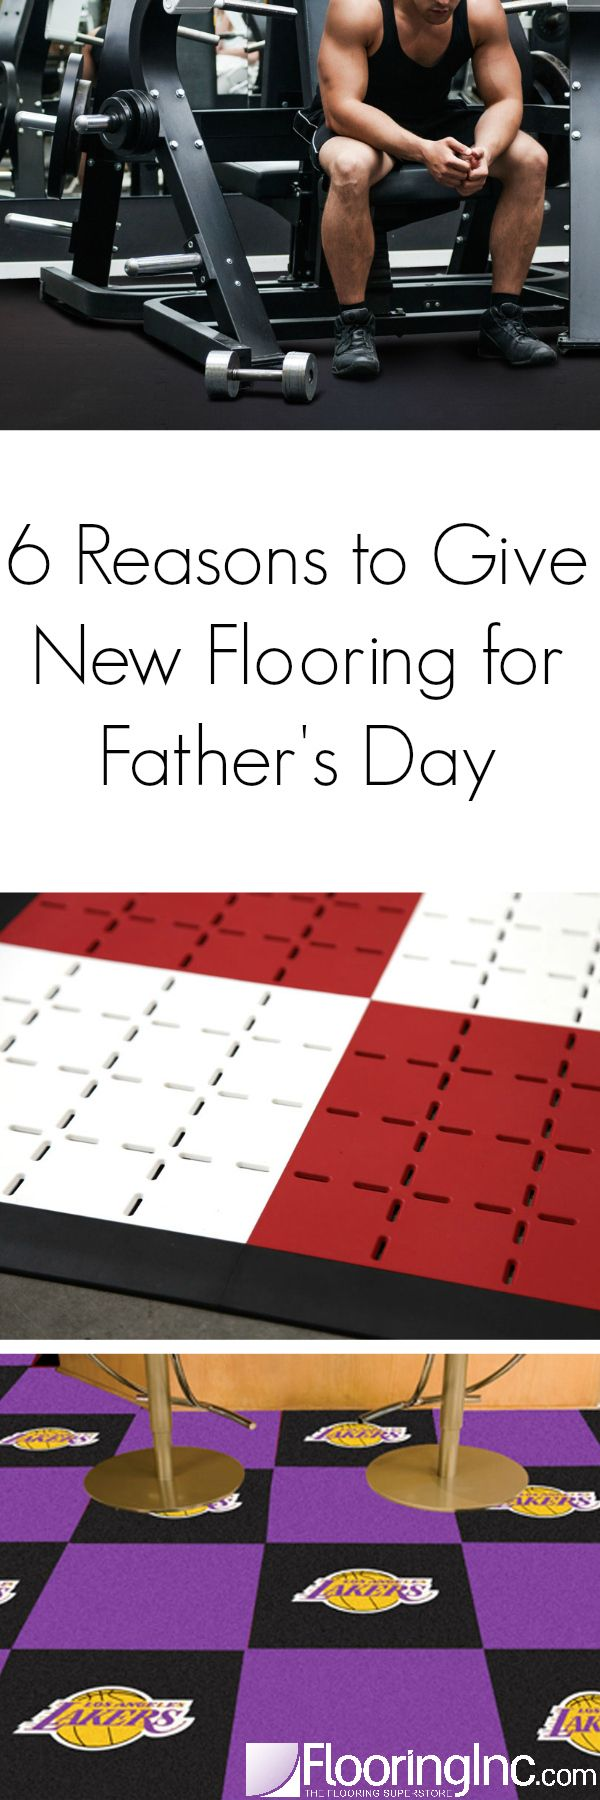 Harley color carpet tiles - New Flooring For Father S Day Carpet Tilesfathers